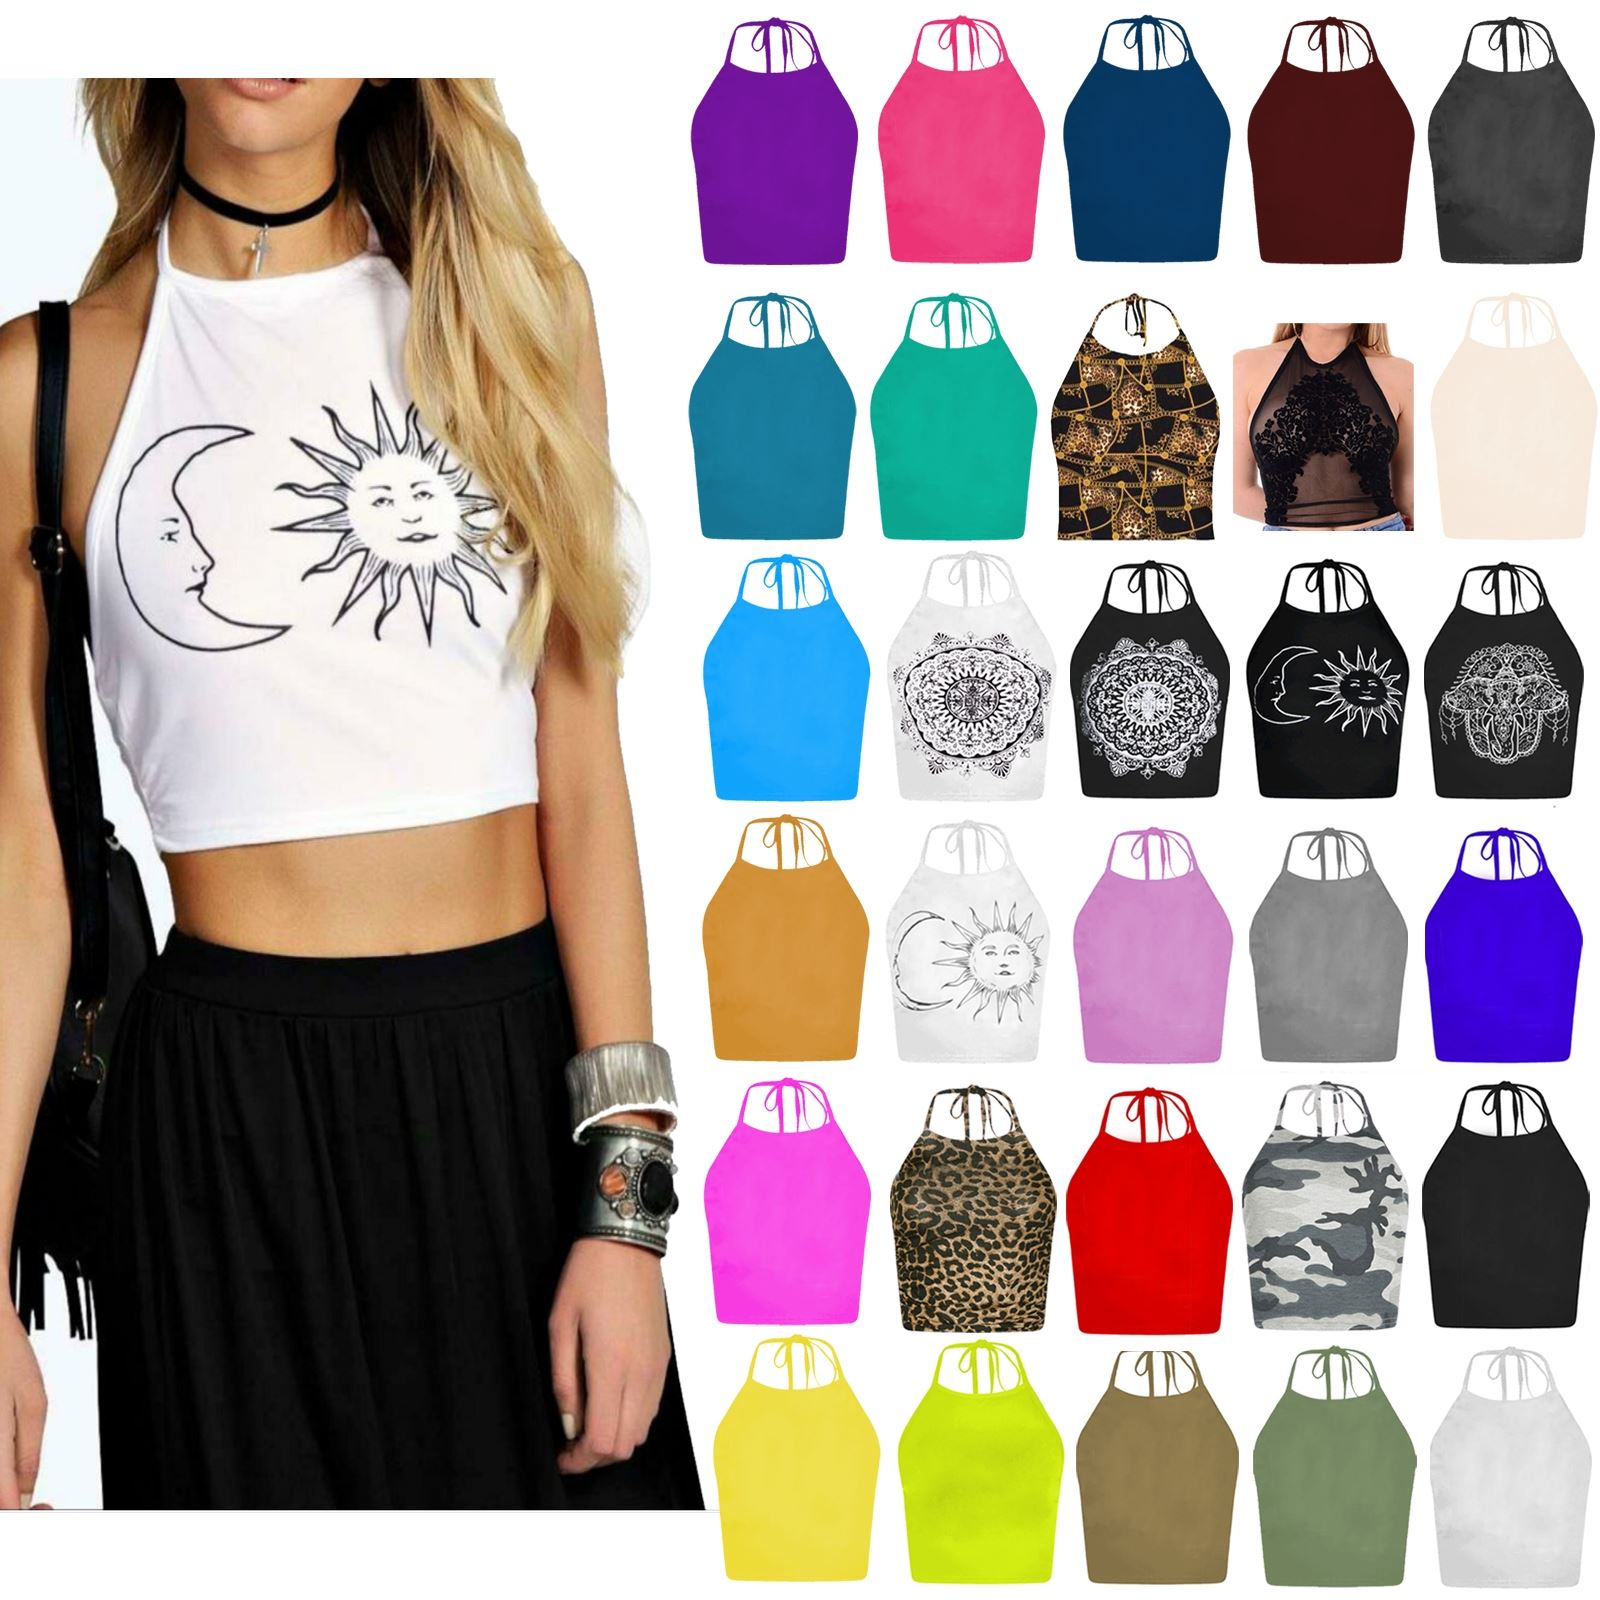 8f48e2cfda5 Details about New Womens Ladies Tie Up Halter Neck Plain Crop Top  Sleeveless Vest T Shirt Tops